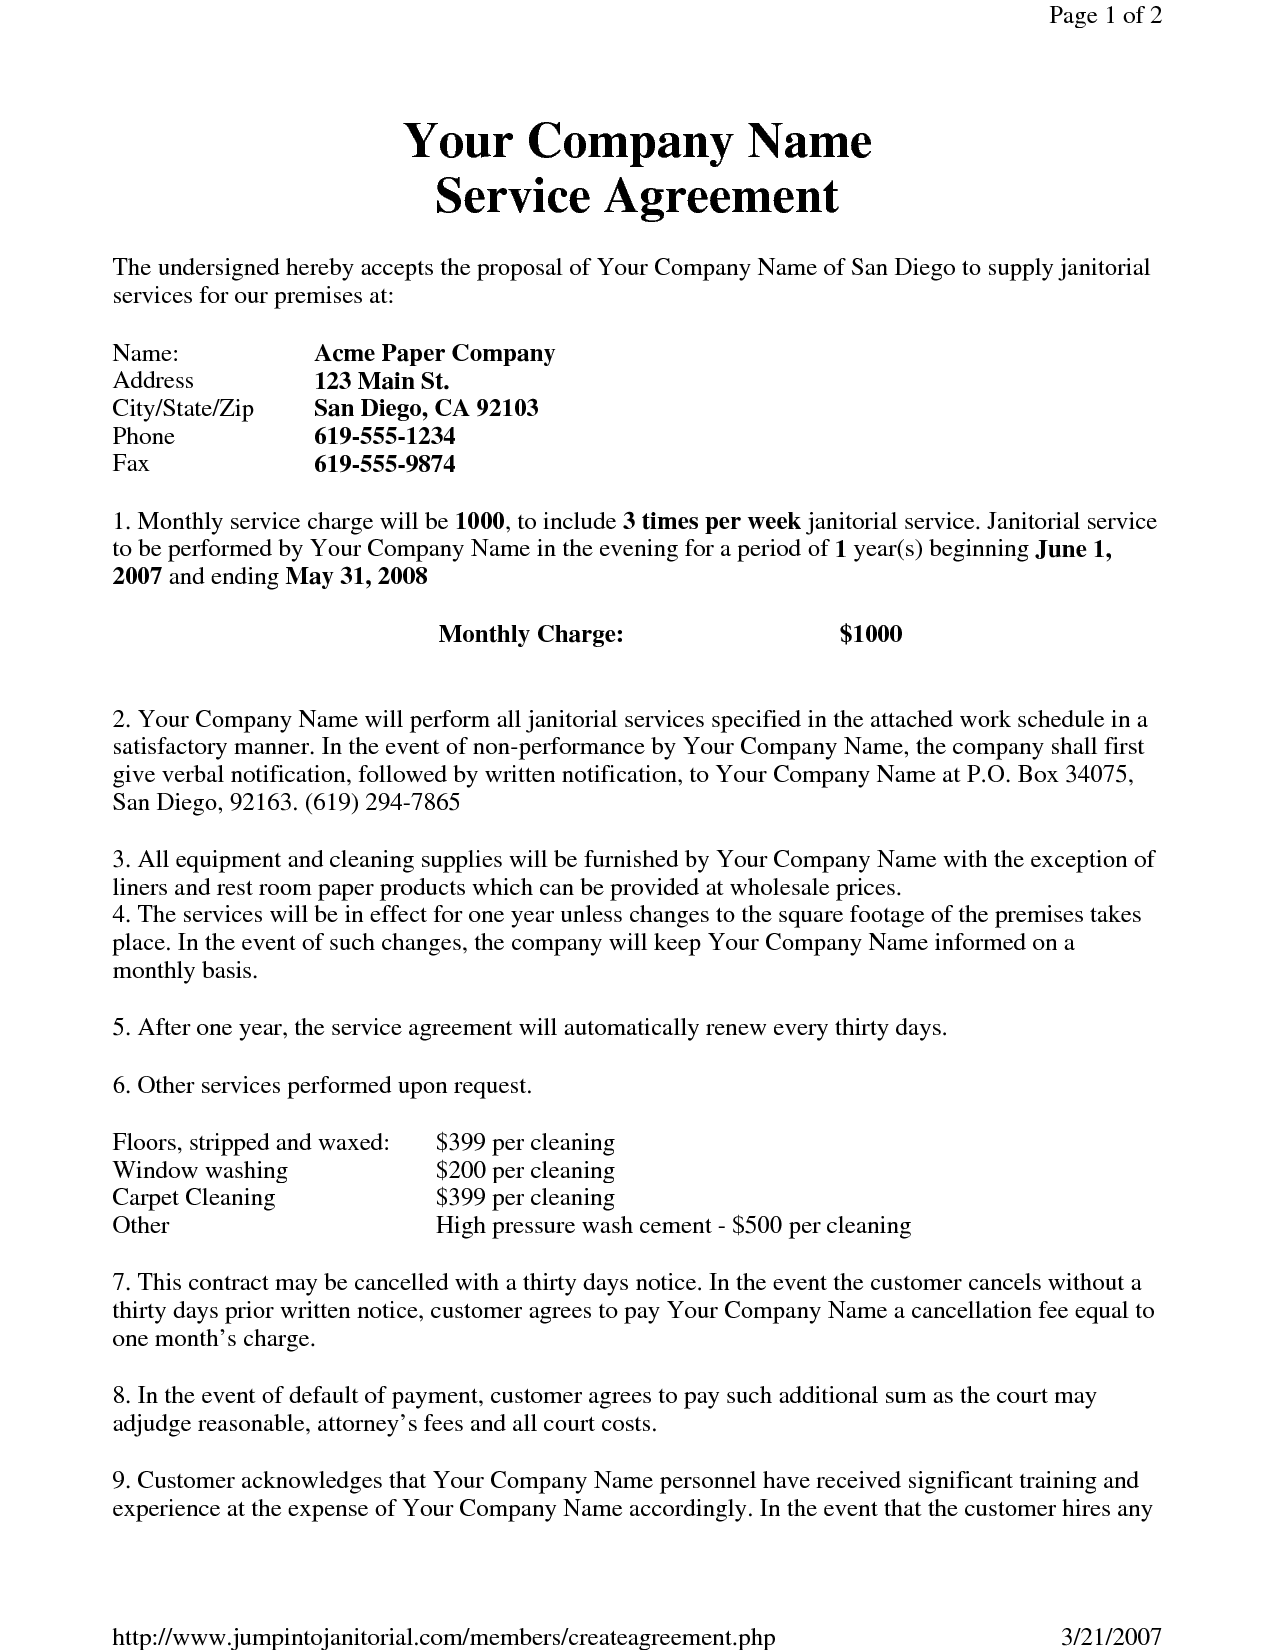 Sample Contracts For Writing Services